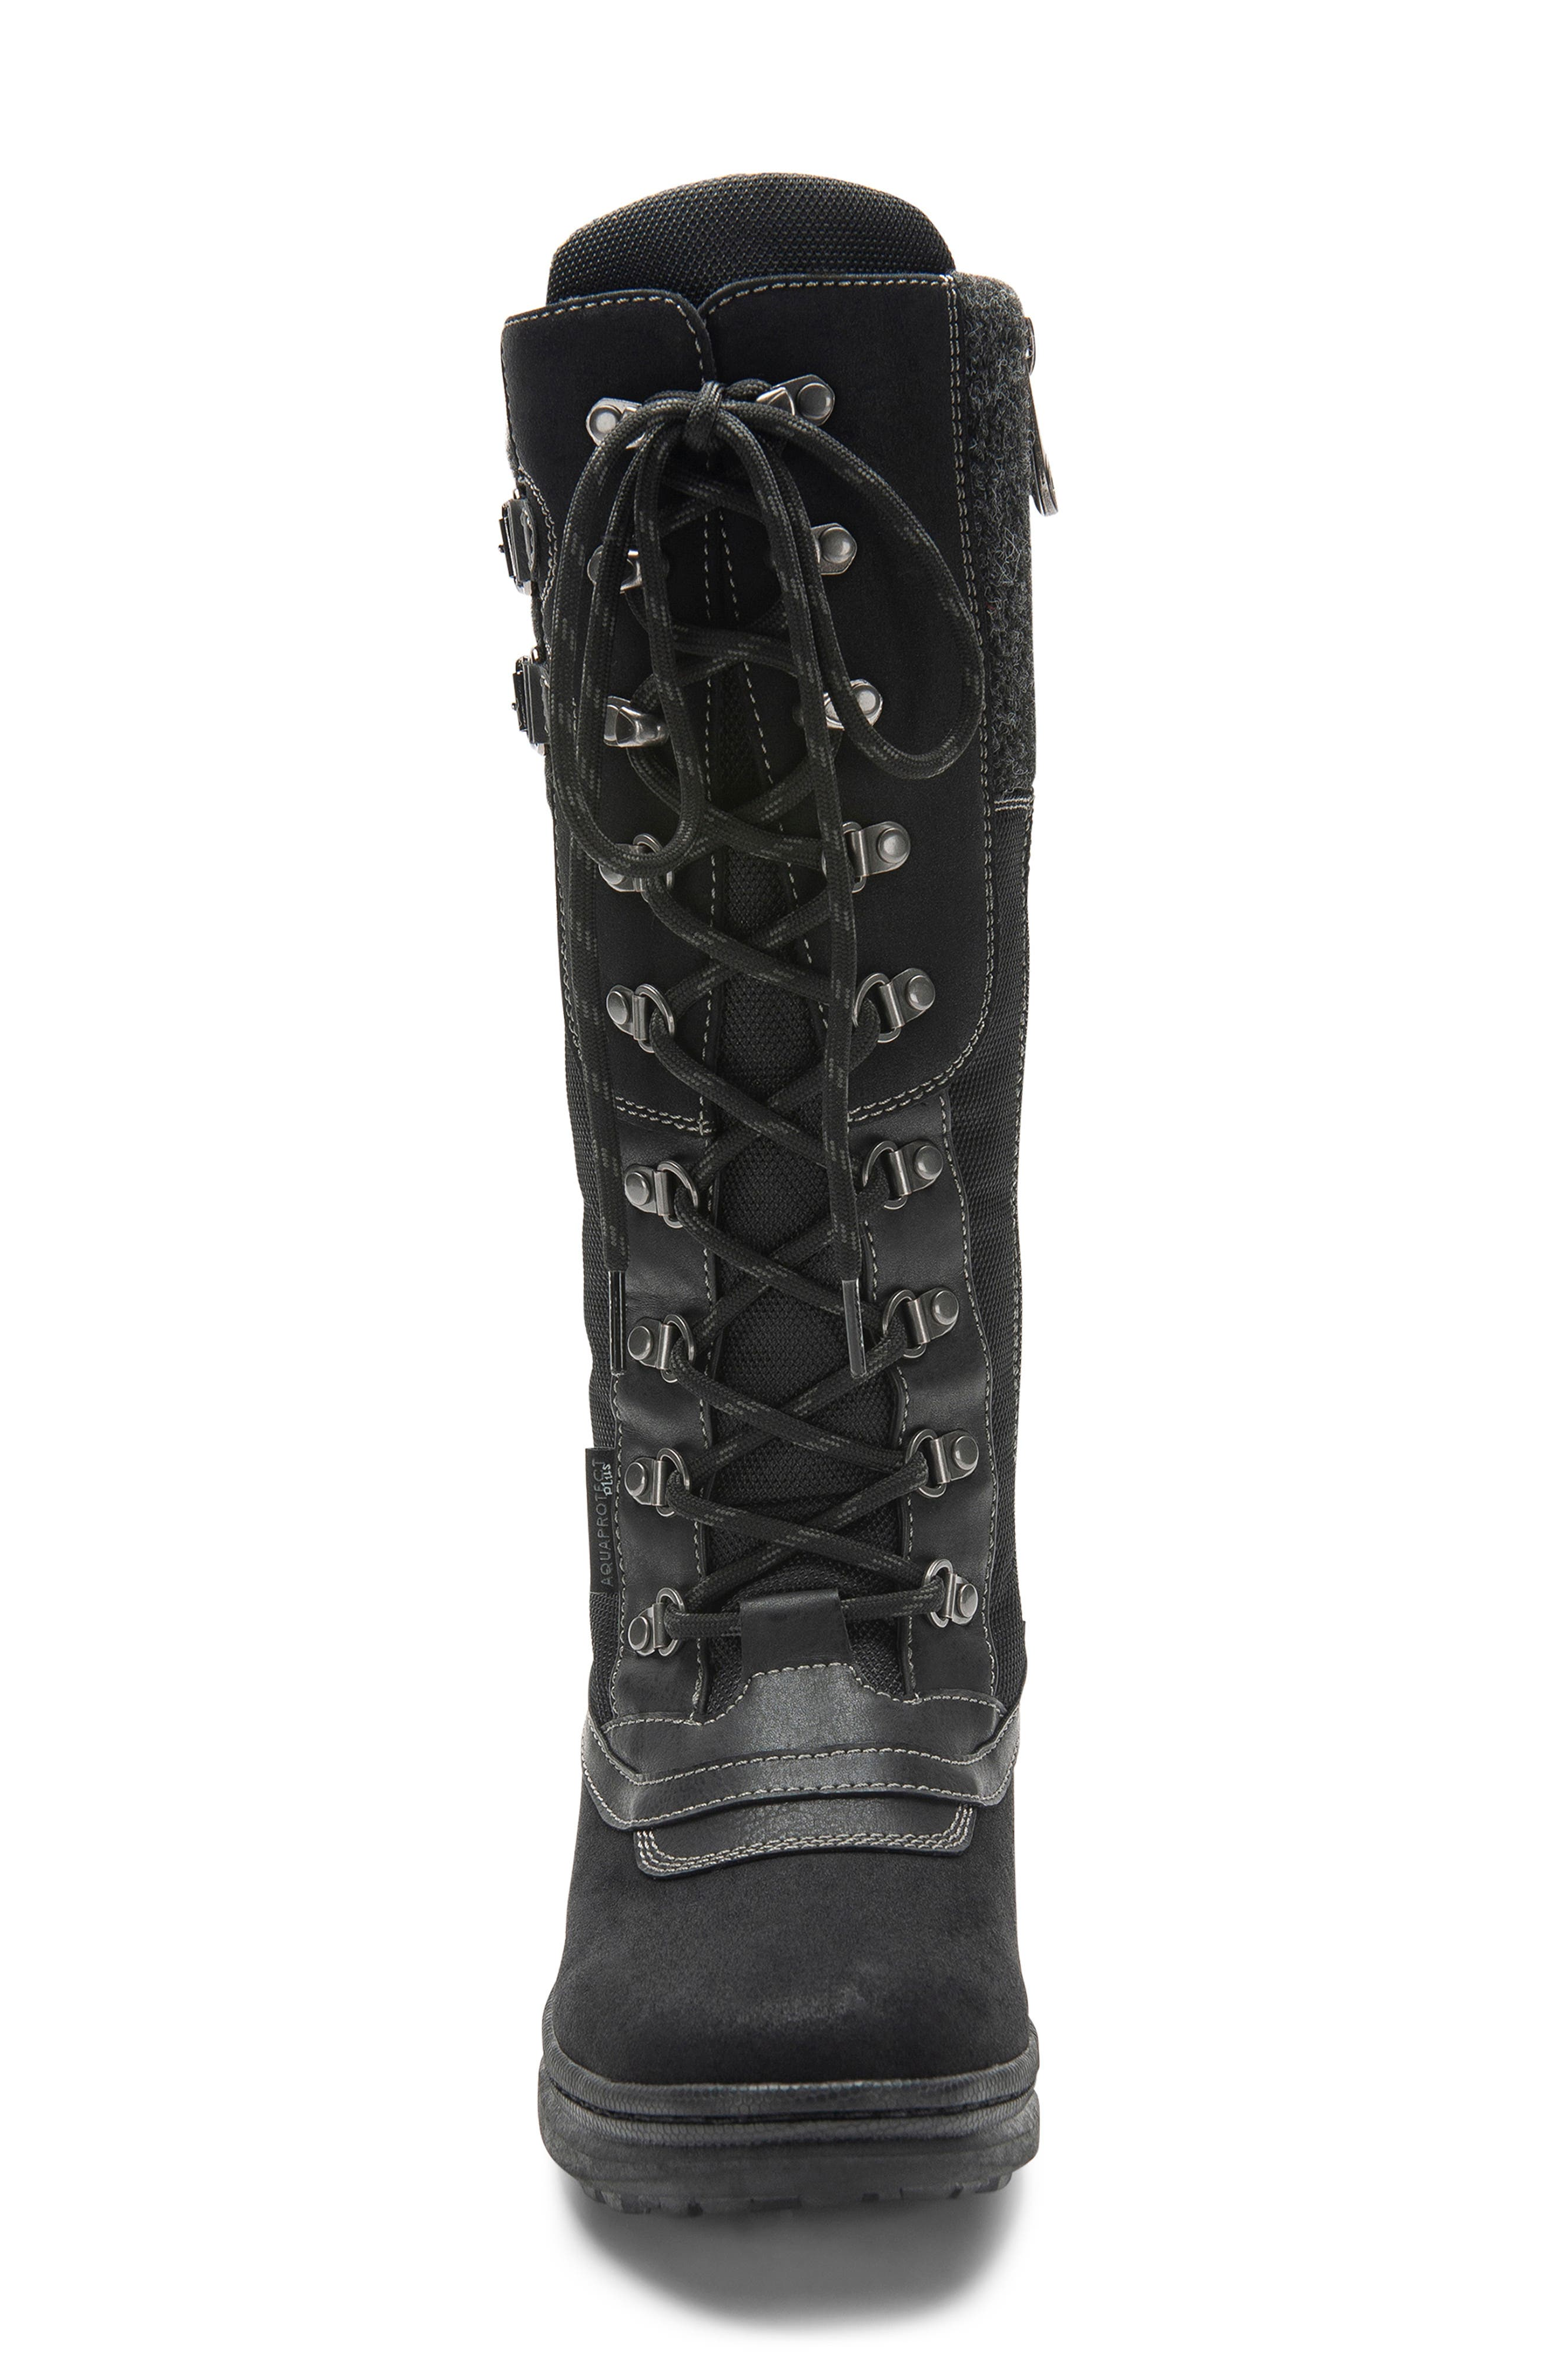 India Waterproof Snow Boot,                             Alternate thumbnail 4, color,                             BLACK LEATHER